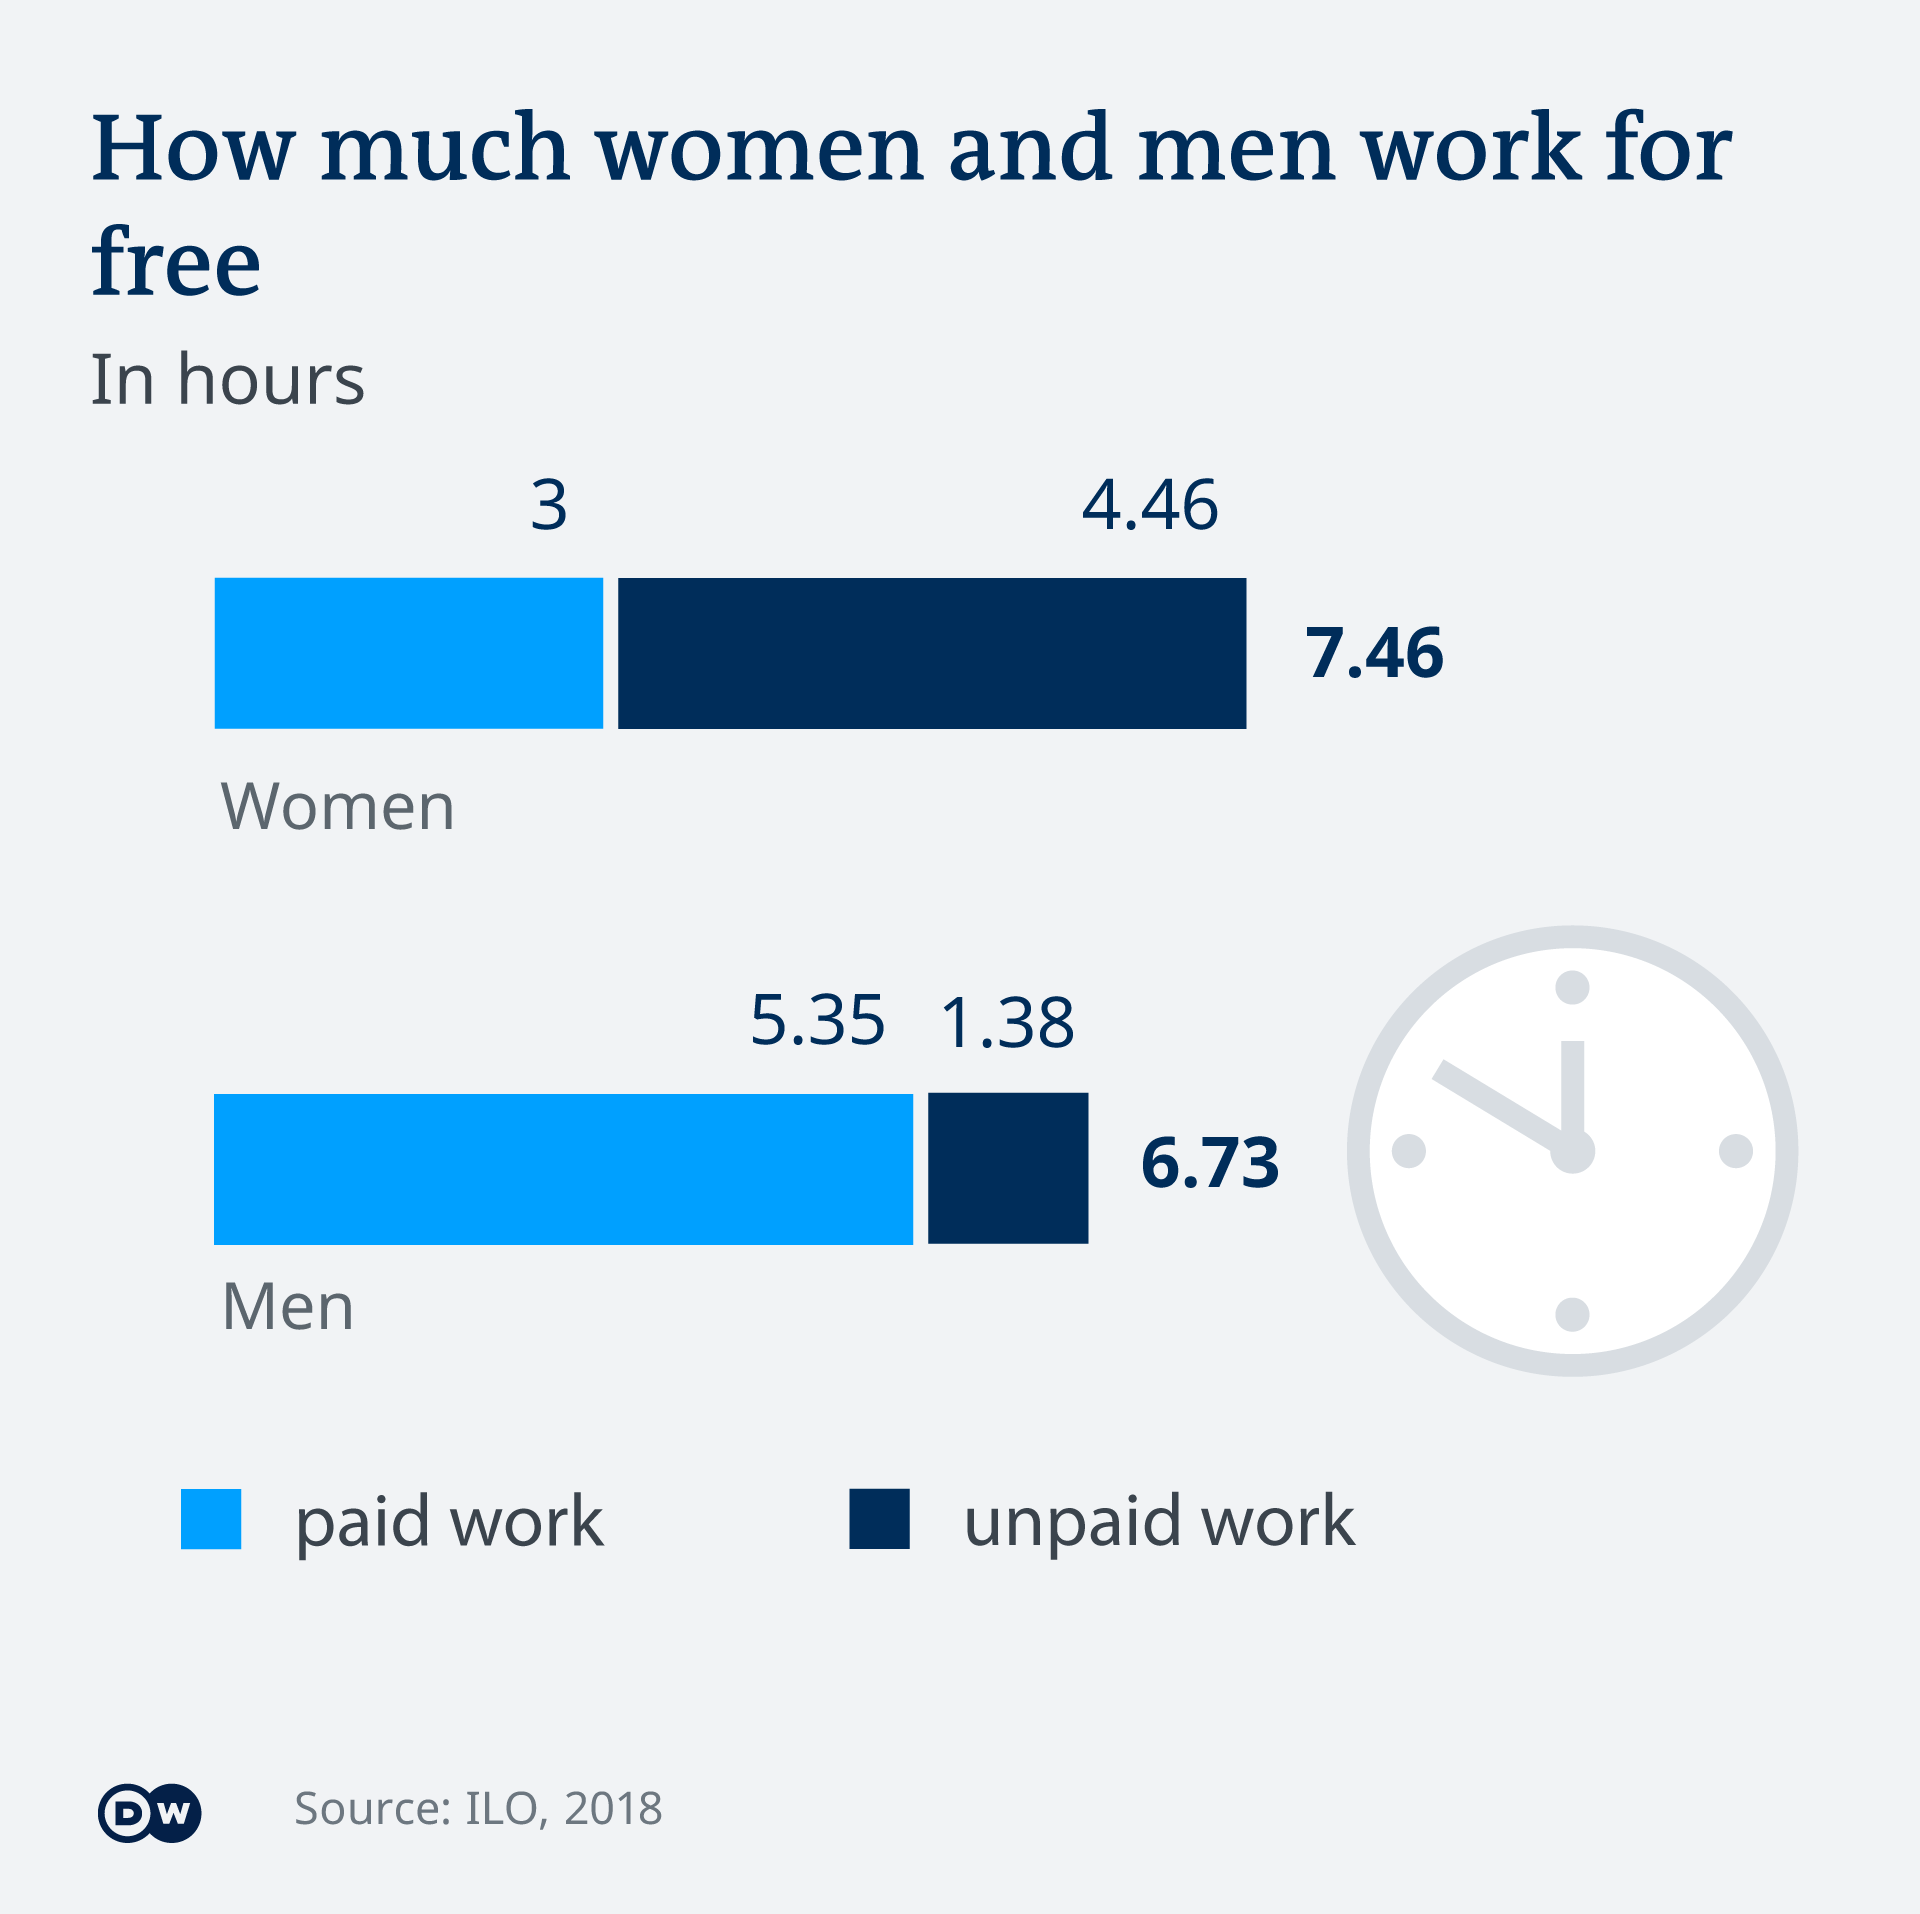 DW Infographic on paid and unpaid work